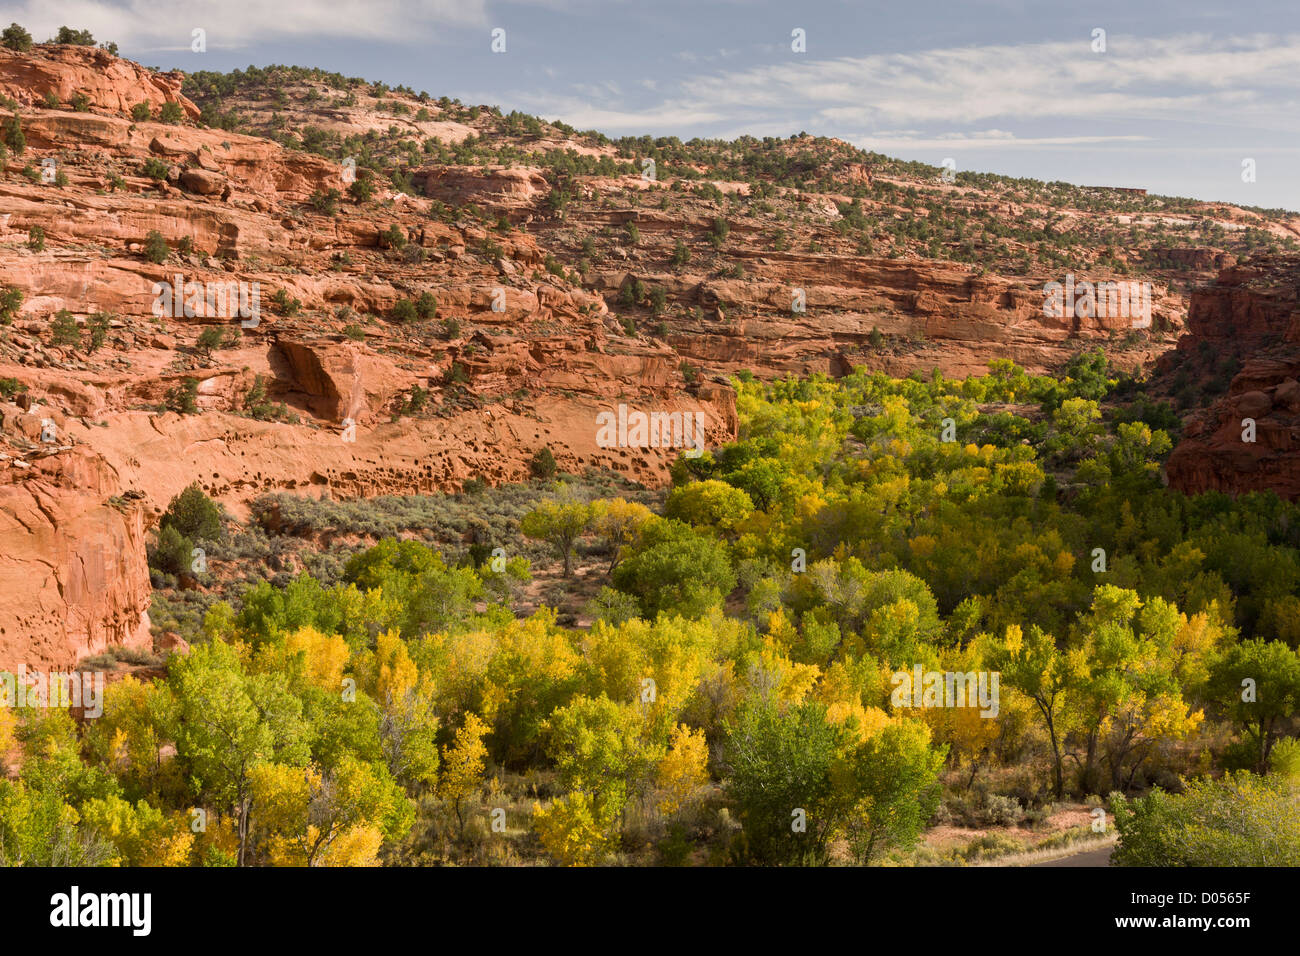 Unspoilt riparian vegetation in Long Canyon, near Boulder, in the Grand Staircase-Escalante National Monument, south - Stock Image